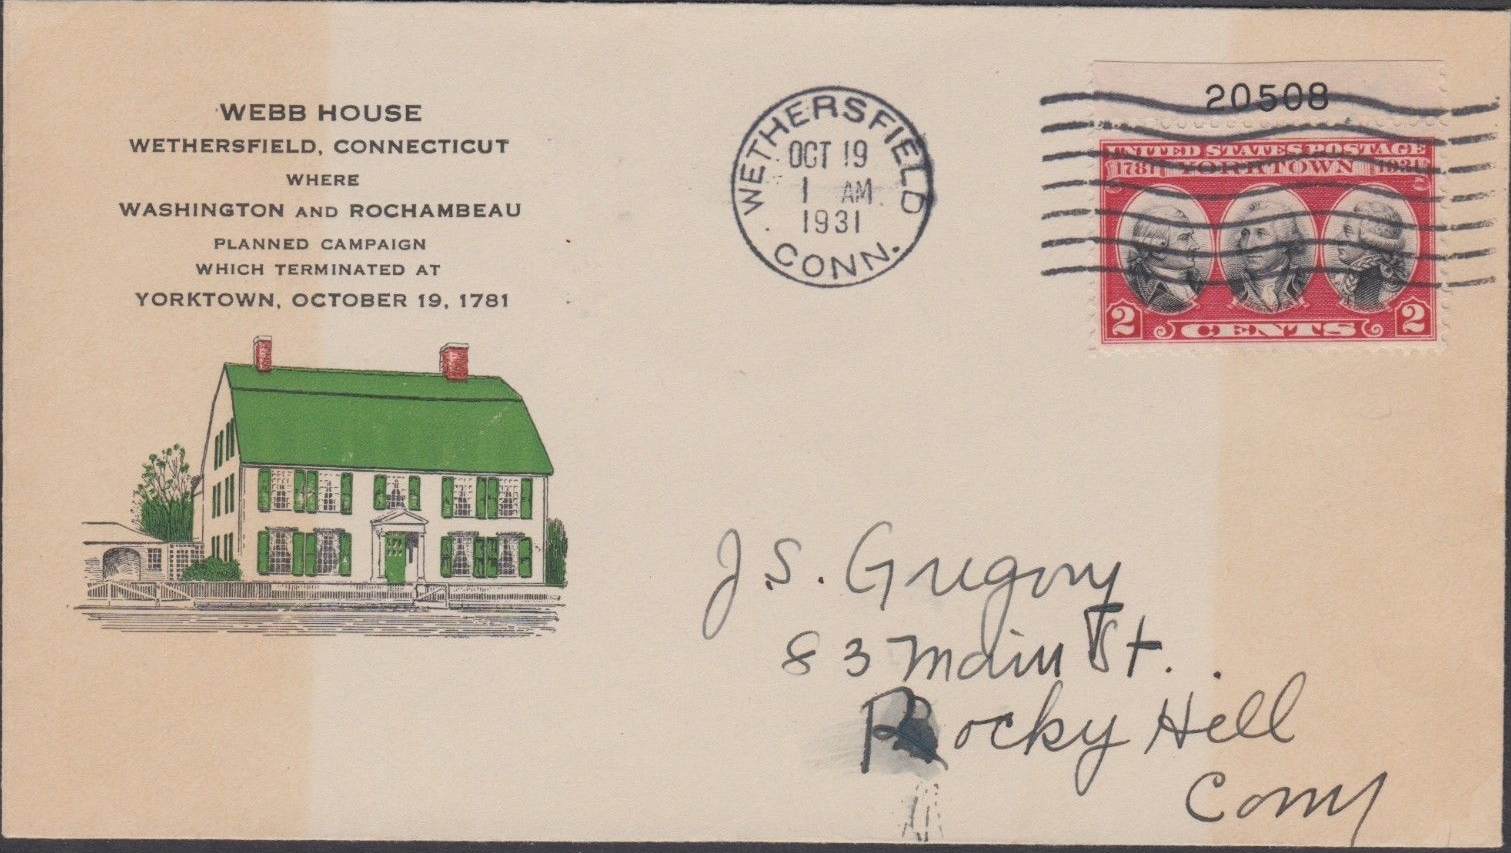 United States - Scott #703 (1931) first day cover from Wethersfield; Webb House cachet